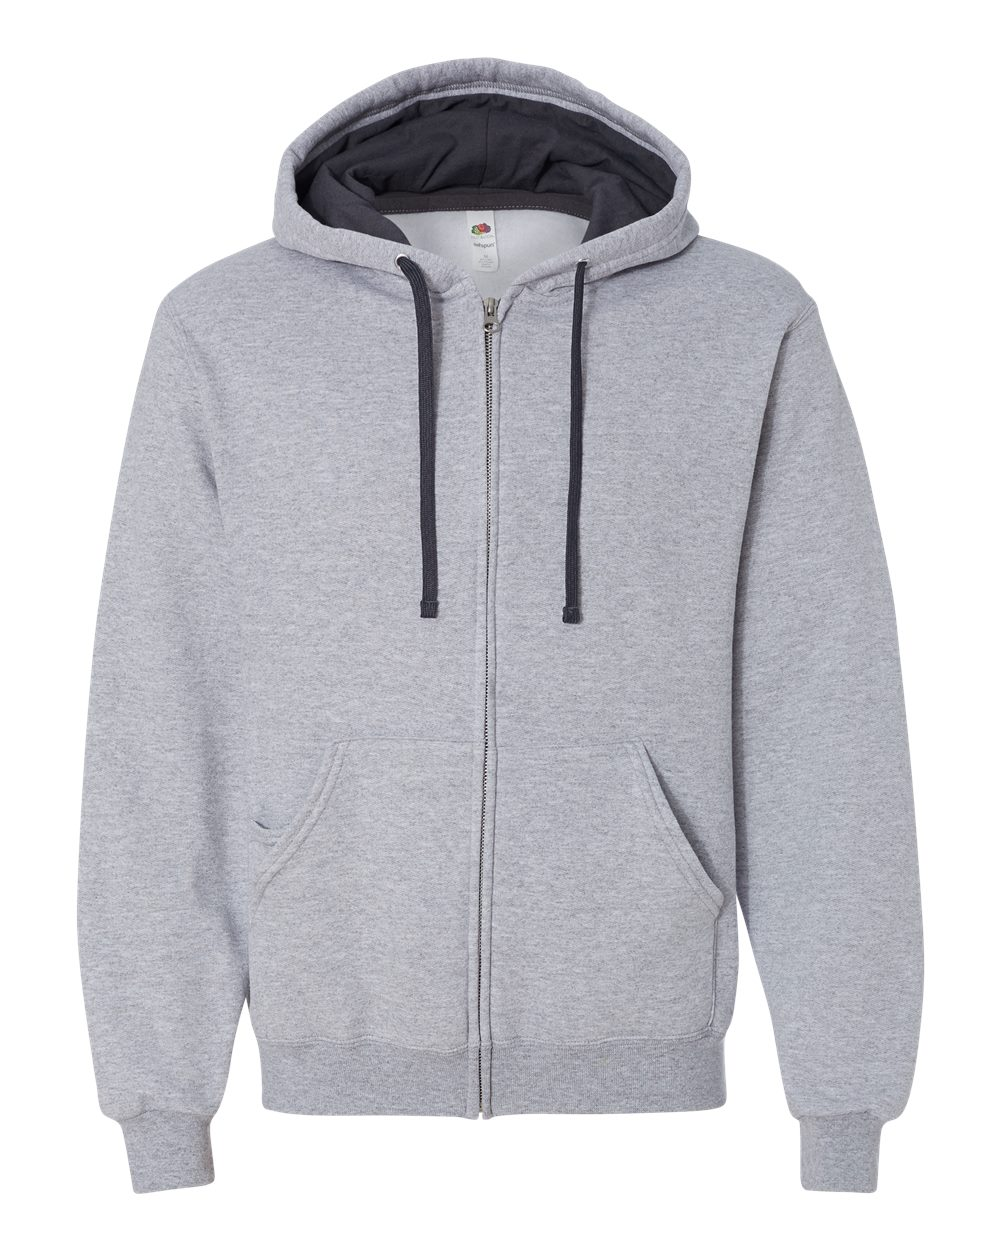 Fruit-of-the-Loom-Mens-Sofspun-Hooded-Full-Zip-Sweatshirt-Blank-SF73R-up-to-3XL thumbnail 9